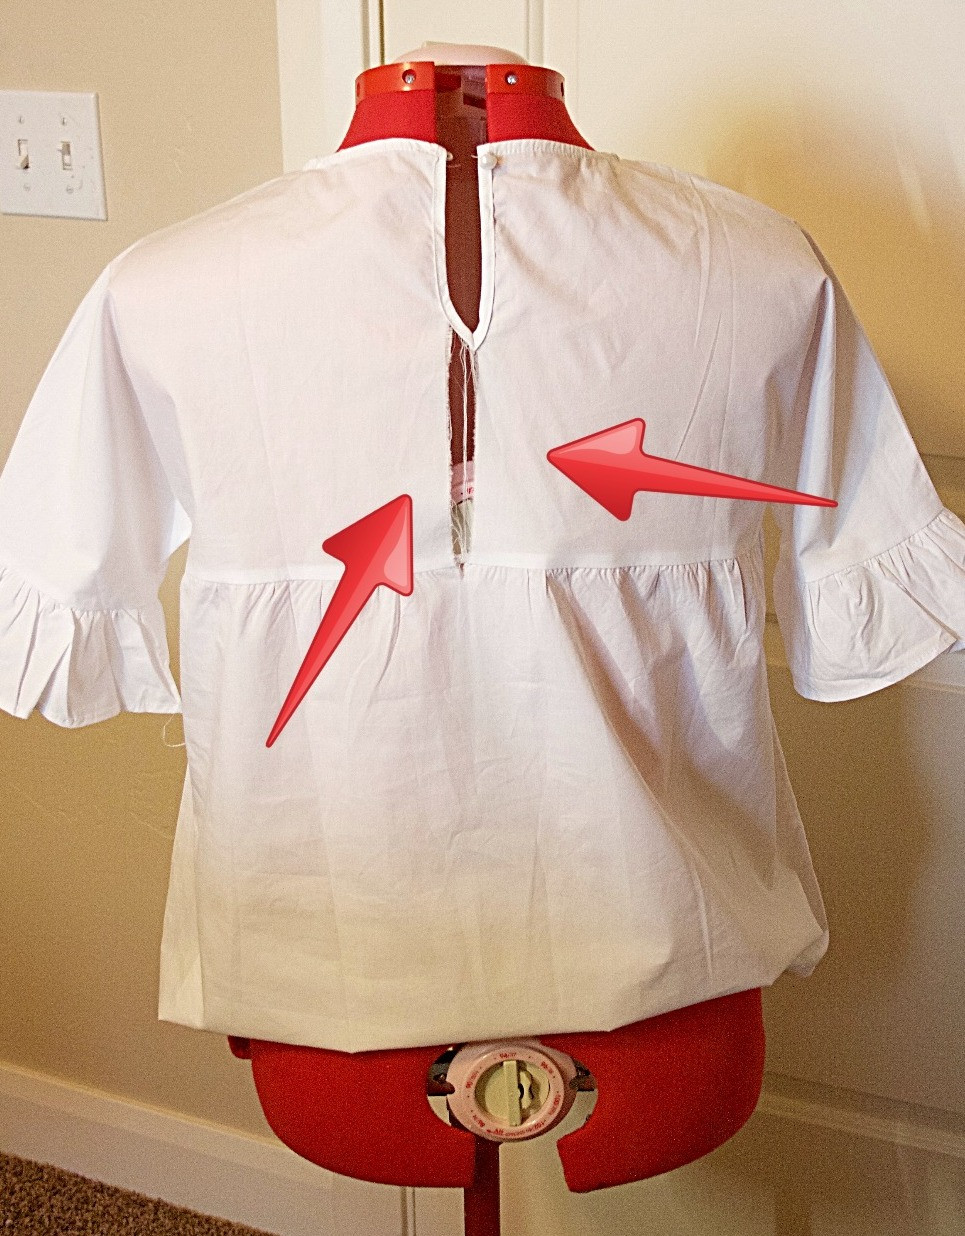 Refashion a shirt that is too small or ripped